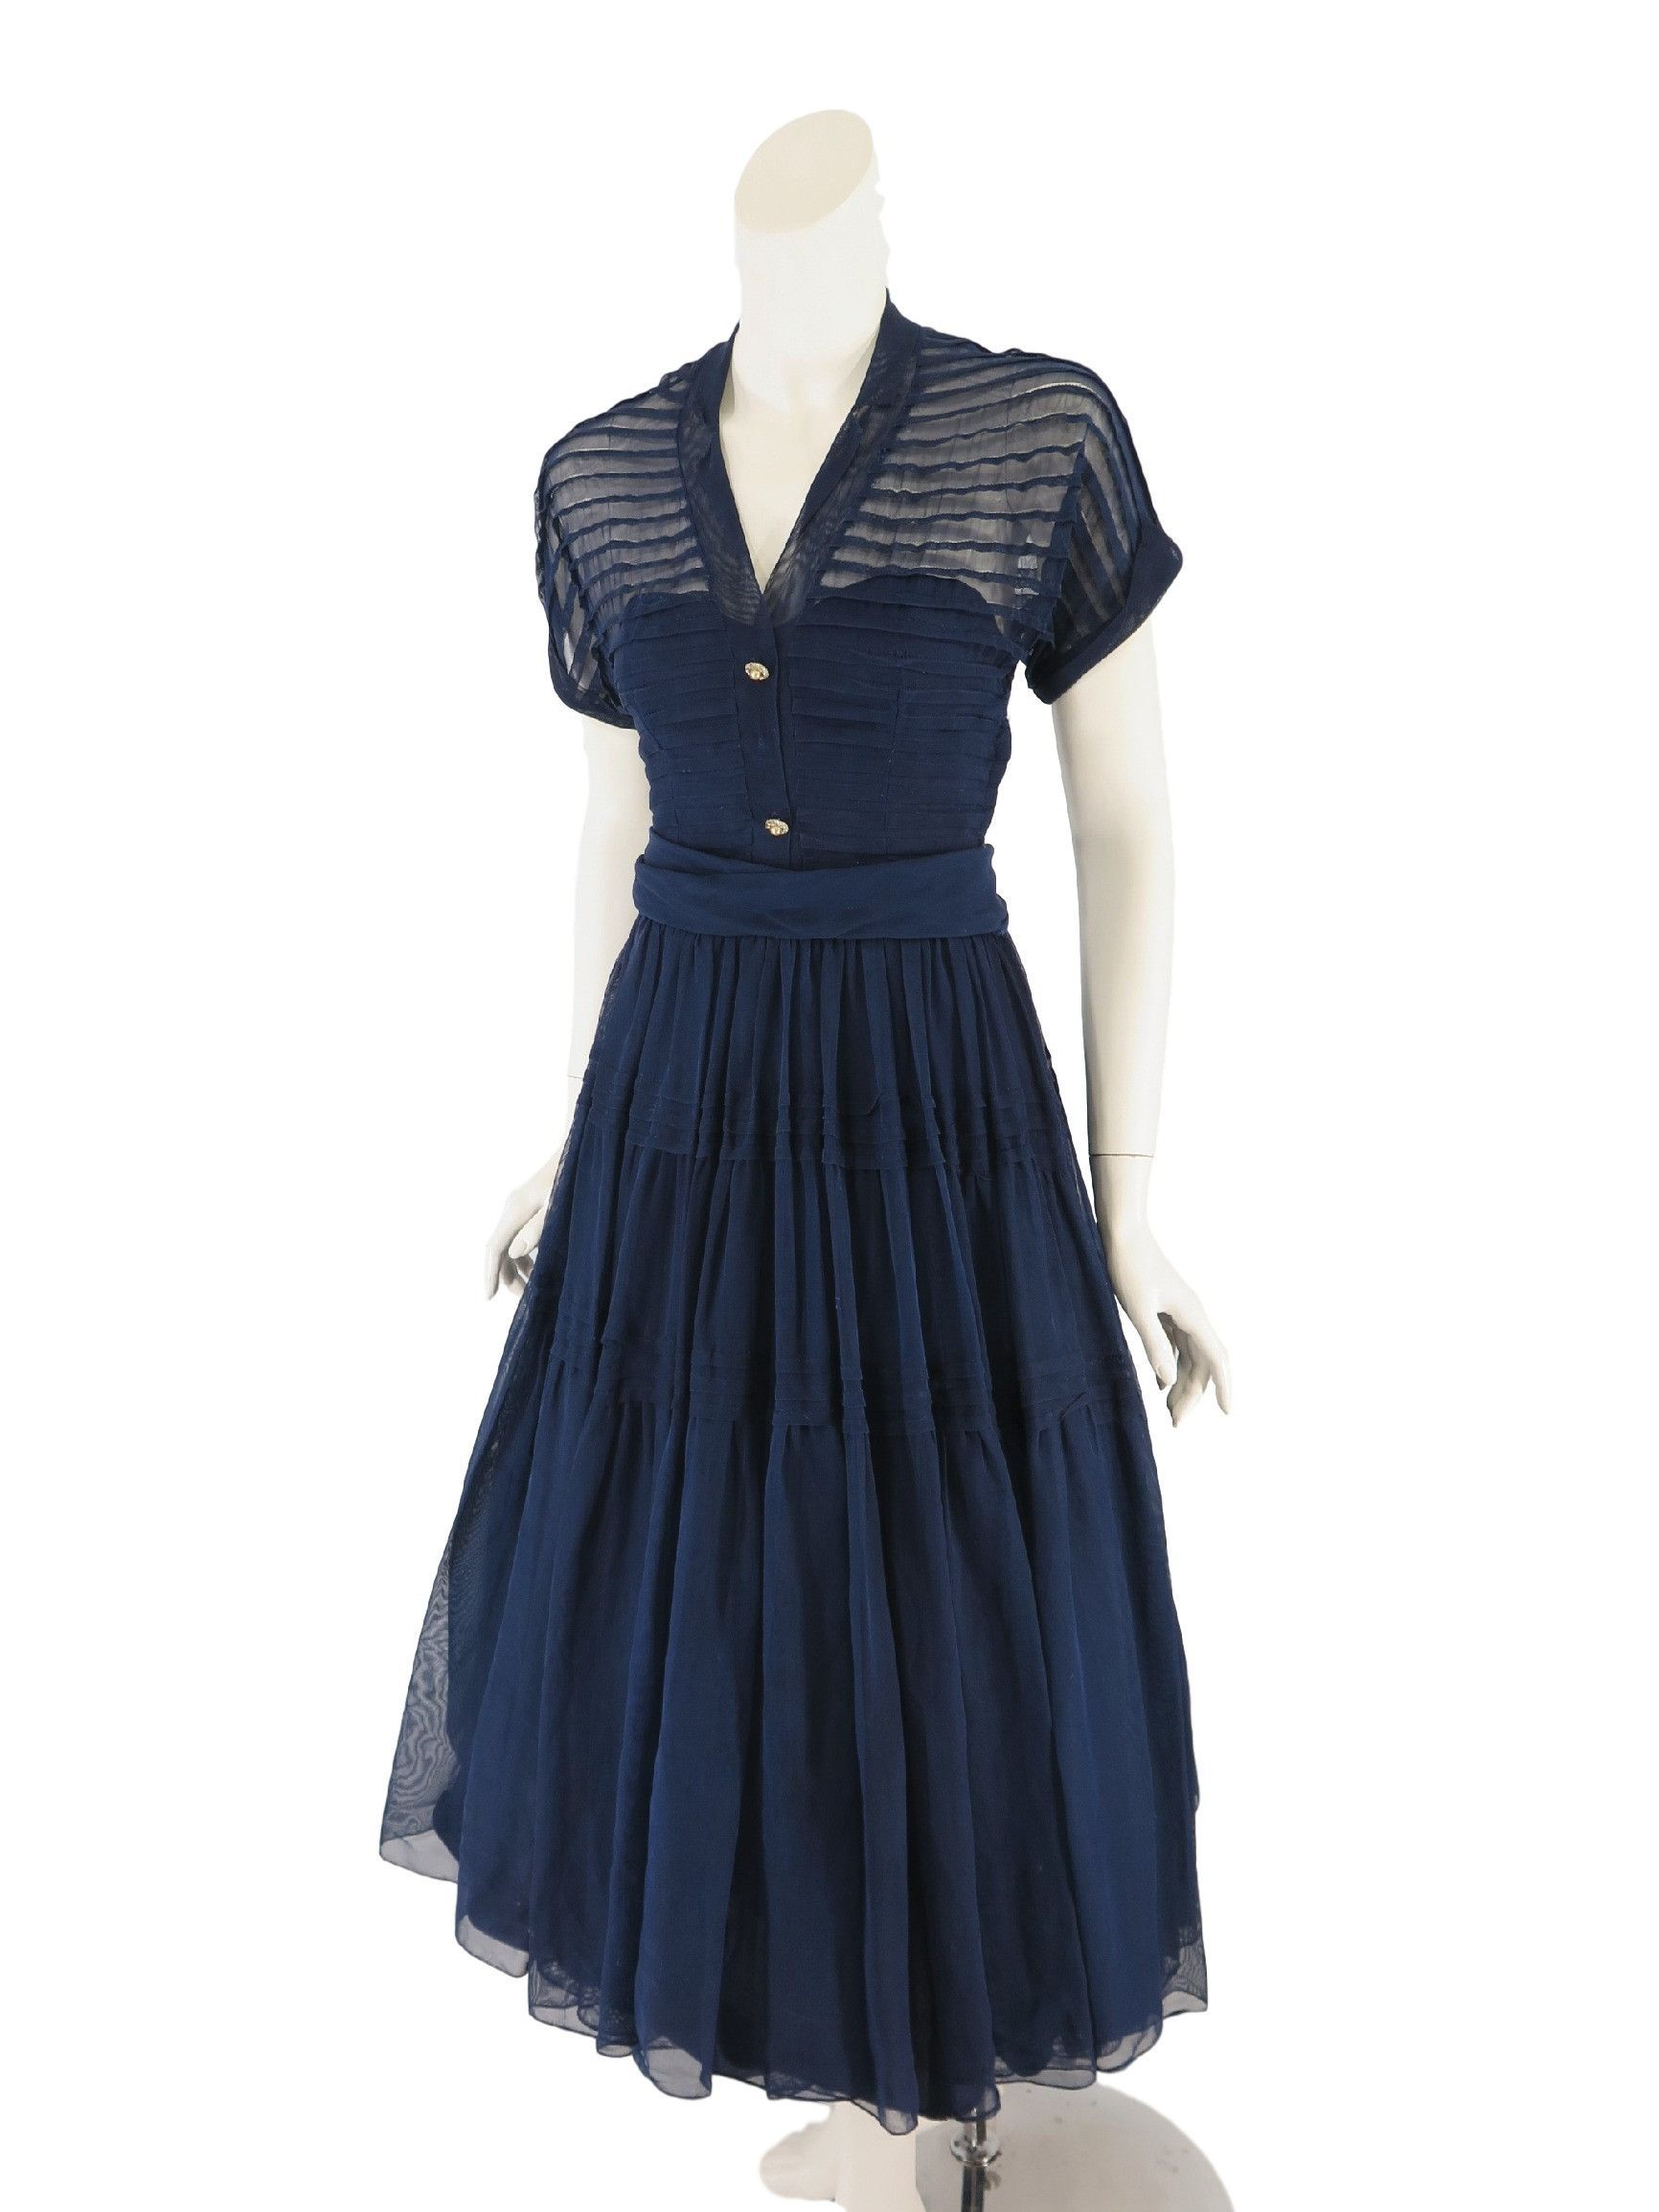 40s/50s Navy Blue Party Dress - sm #navyblueshortdress